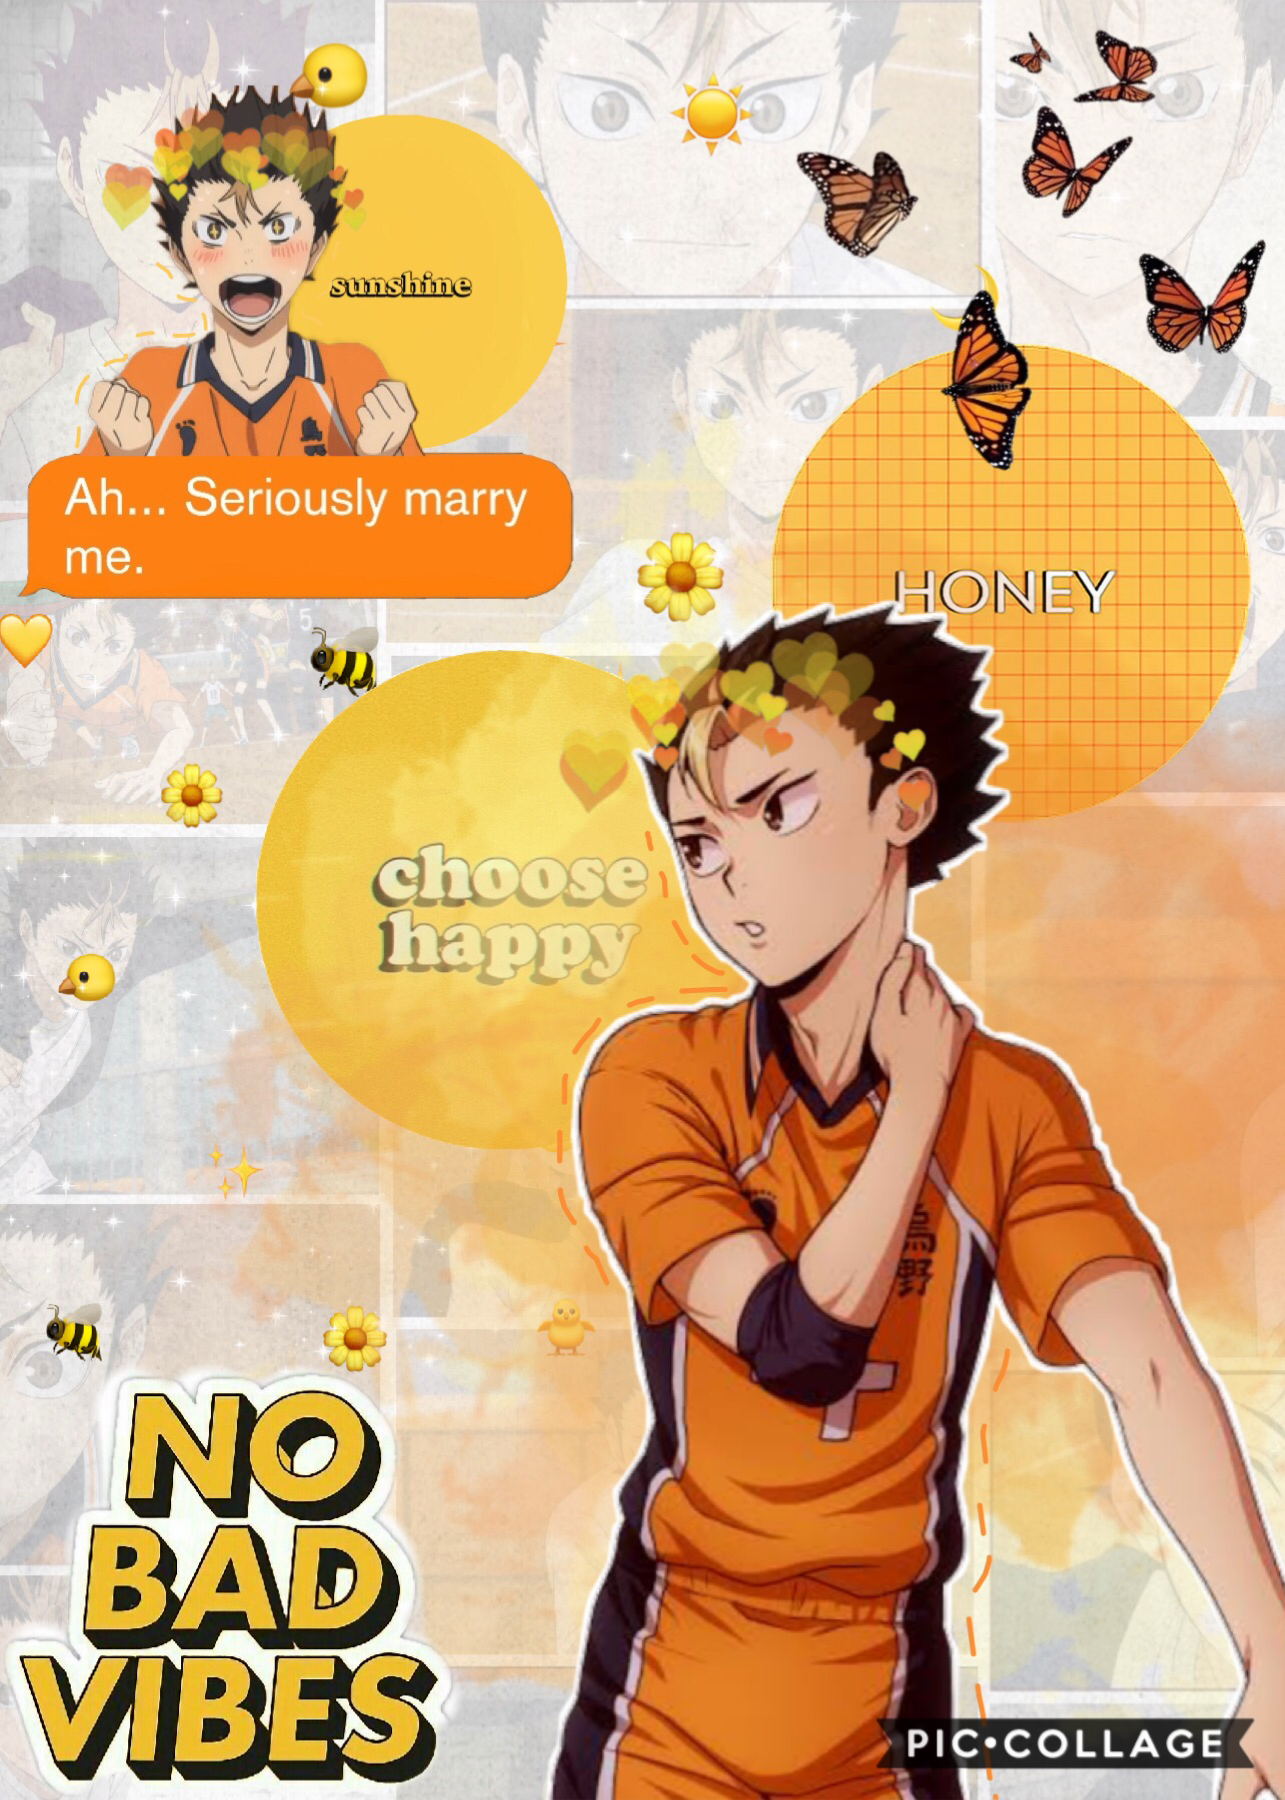 Err, this was requested by @r0lling_thunder. I usually don't take requests, but it's whatever I guess. As you can tell, I had no idea or inspiration at all, that's also why it took me so long to post this. I'll be making more Nishinoya edits in the future